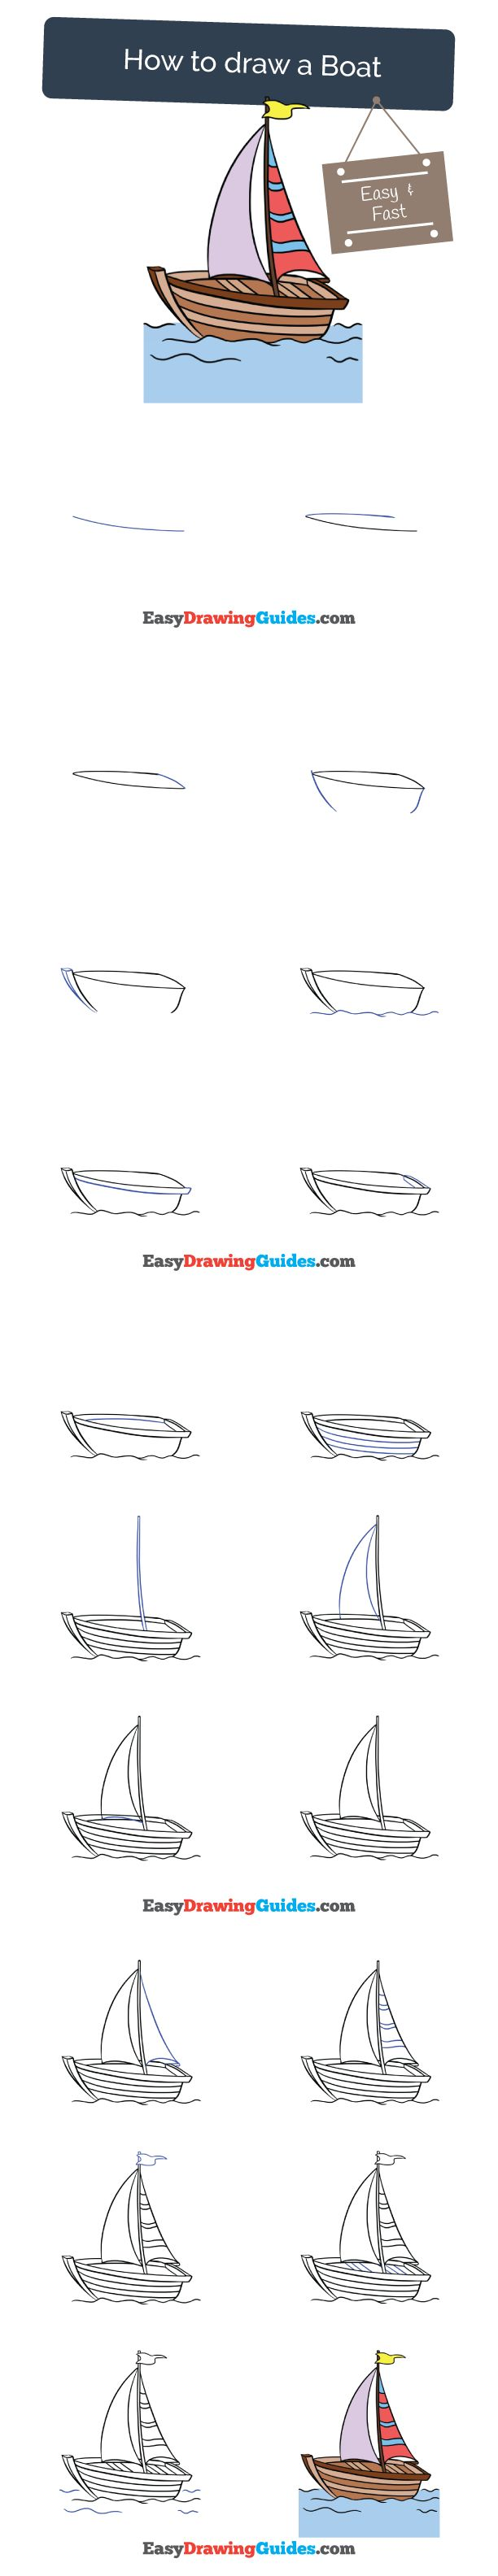 Uncategorized How To Draw A Boat Easy best 25 boat drawing ideas on pinterest sailboat how to a in few easy steps